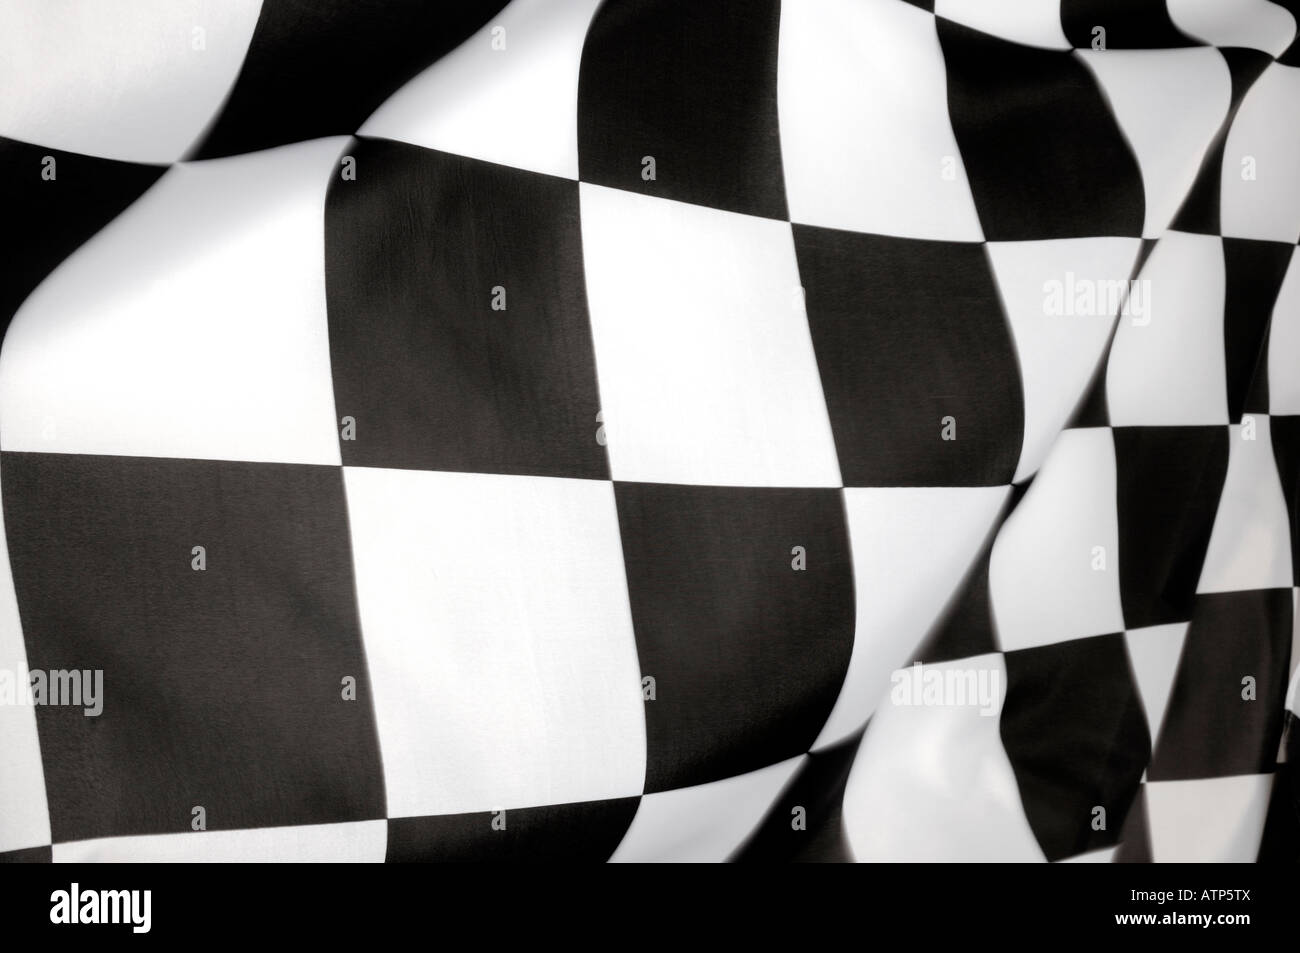 chequered flag - Stock Image